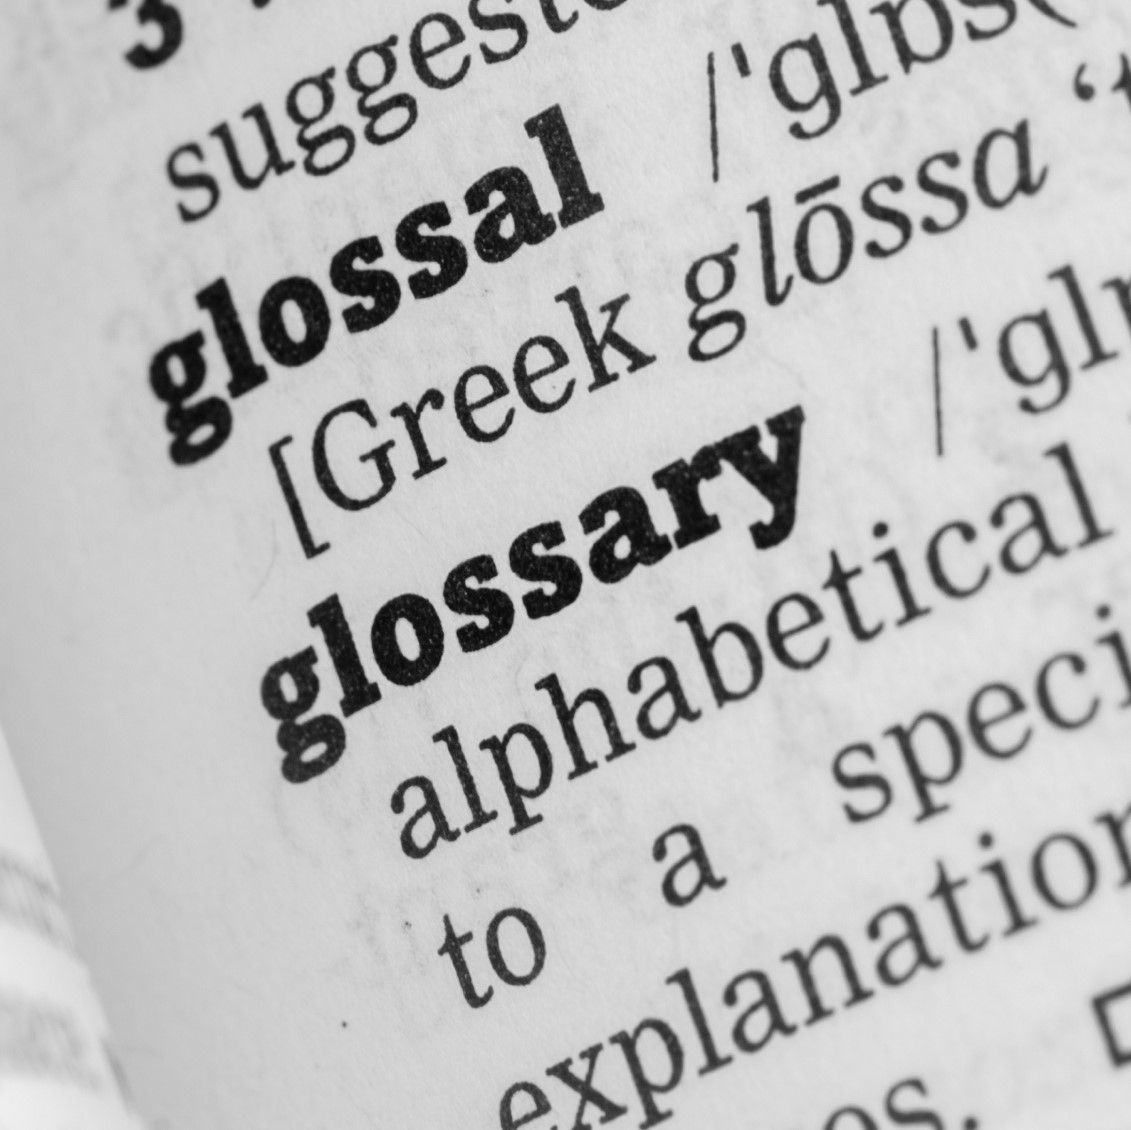 Dictionary, single word close up of the word glossary.